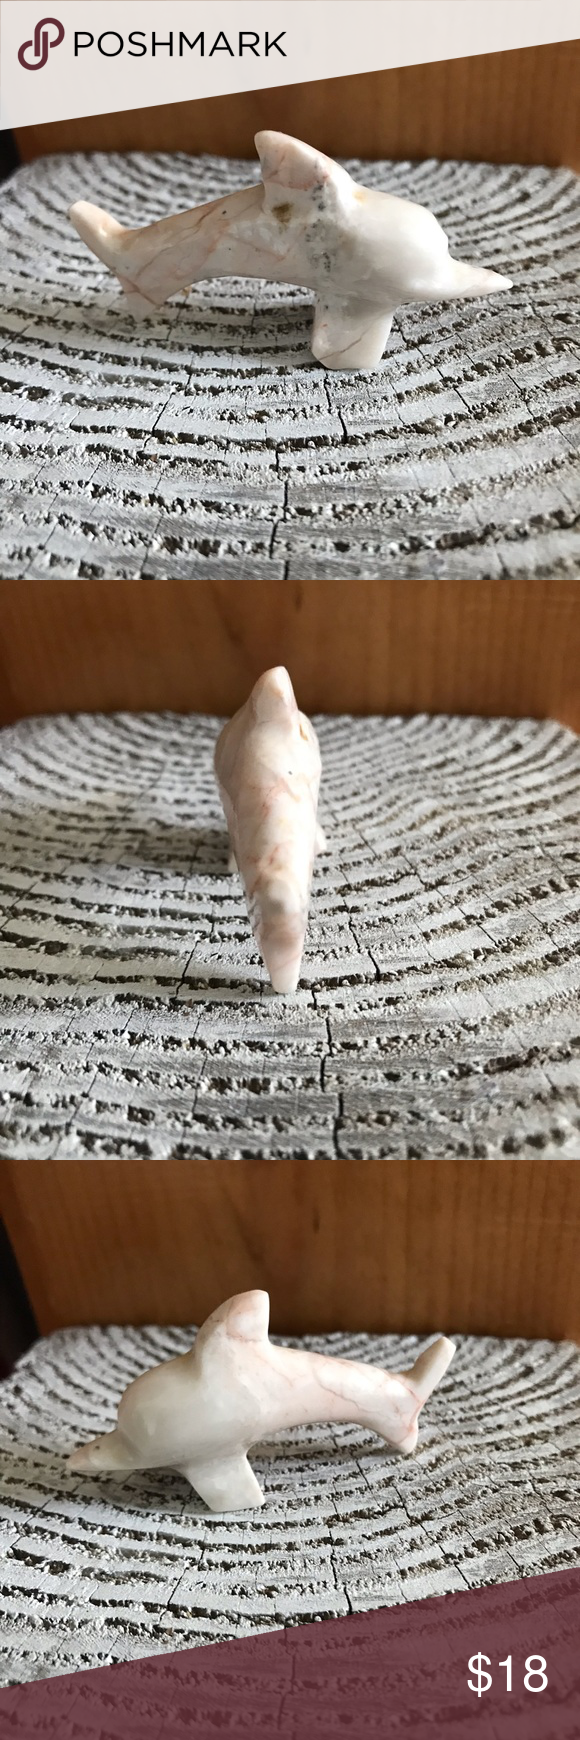 Stone Carved Dolphin Knick Knack Carved Stone Dolphin Pale pink and white Gently used condition   See measurements in picture  Knick knack, tchotchkes Accents Decor #knickknack Stone Carved Dolphin Knick Knack Carved Stone Dolphin Pale pink and white Gently used condition   See measurements in picture  Knick knack, tchotchkes Accents Decor #knickknack Stone Carved Dolphin Knick Knack Carved Stone Dolphin Pale pink and white Gently used condition   See measurements in picture  Knick knack, tchotc #knickknack